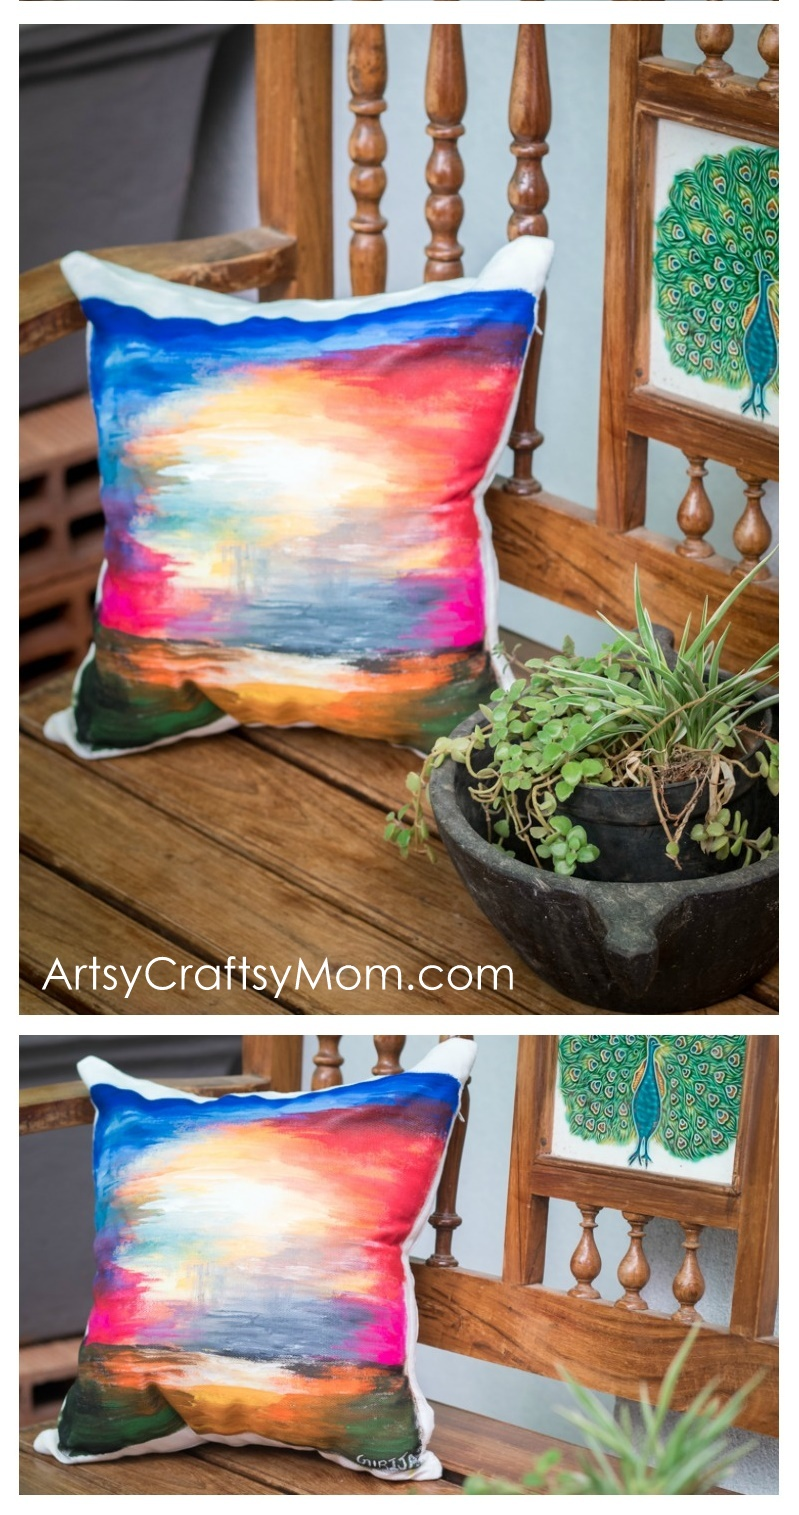 Sunset Art Pillow Cover Painting Tutorial using Fevicryl Fabric Colors - Take a paintbrush to your throw pillows for a one-of-a-kind DIY that will wow you! #FabricPeFevicryl #FevicrylKalaStars